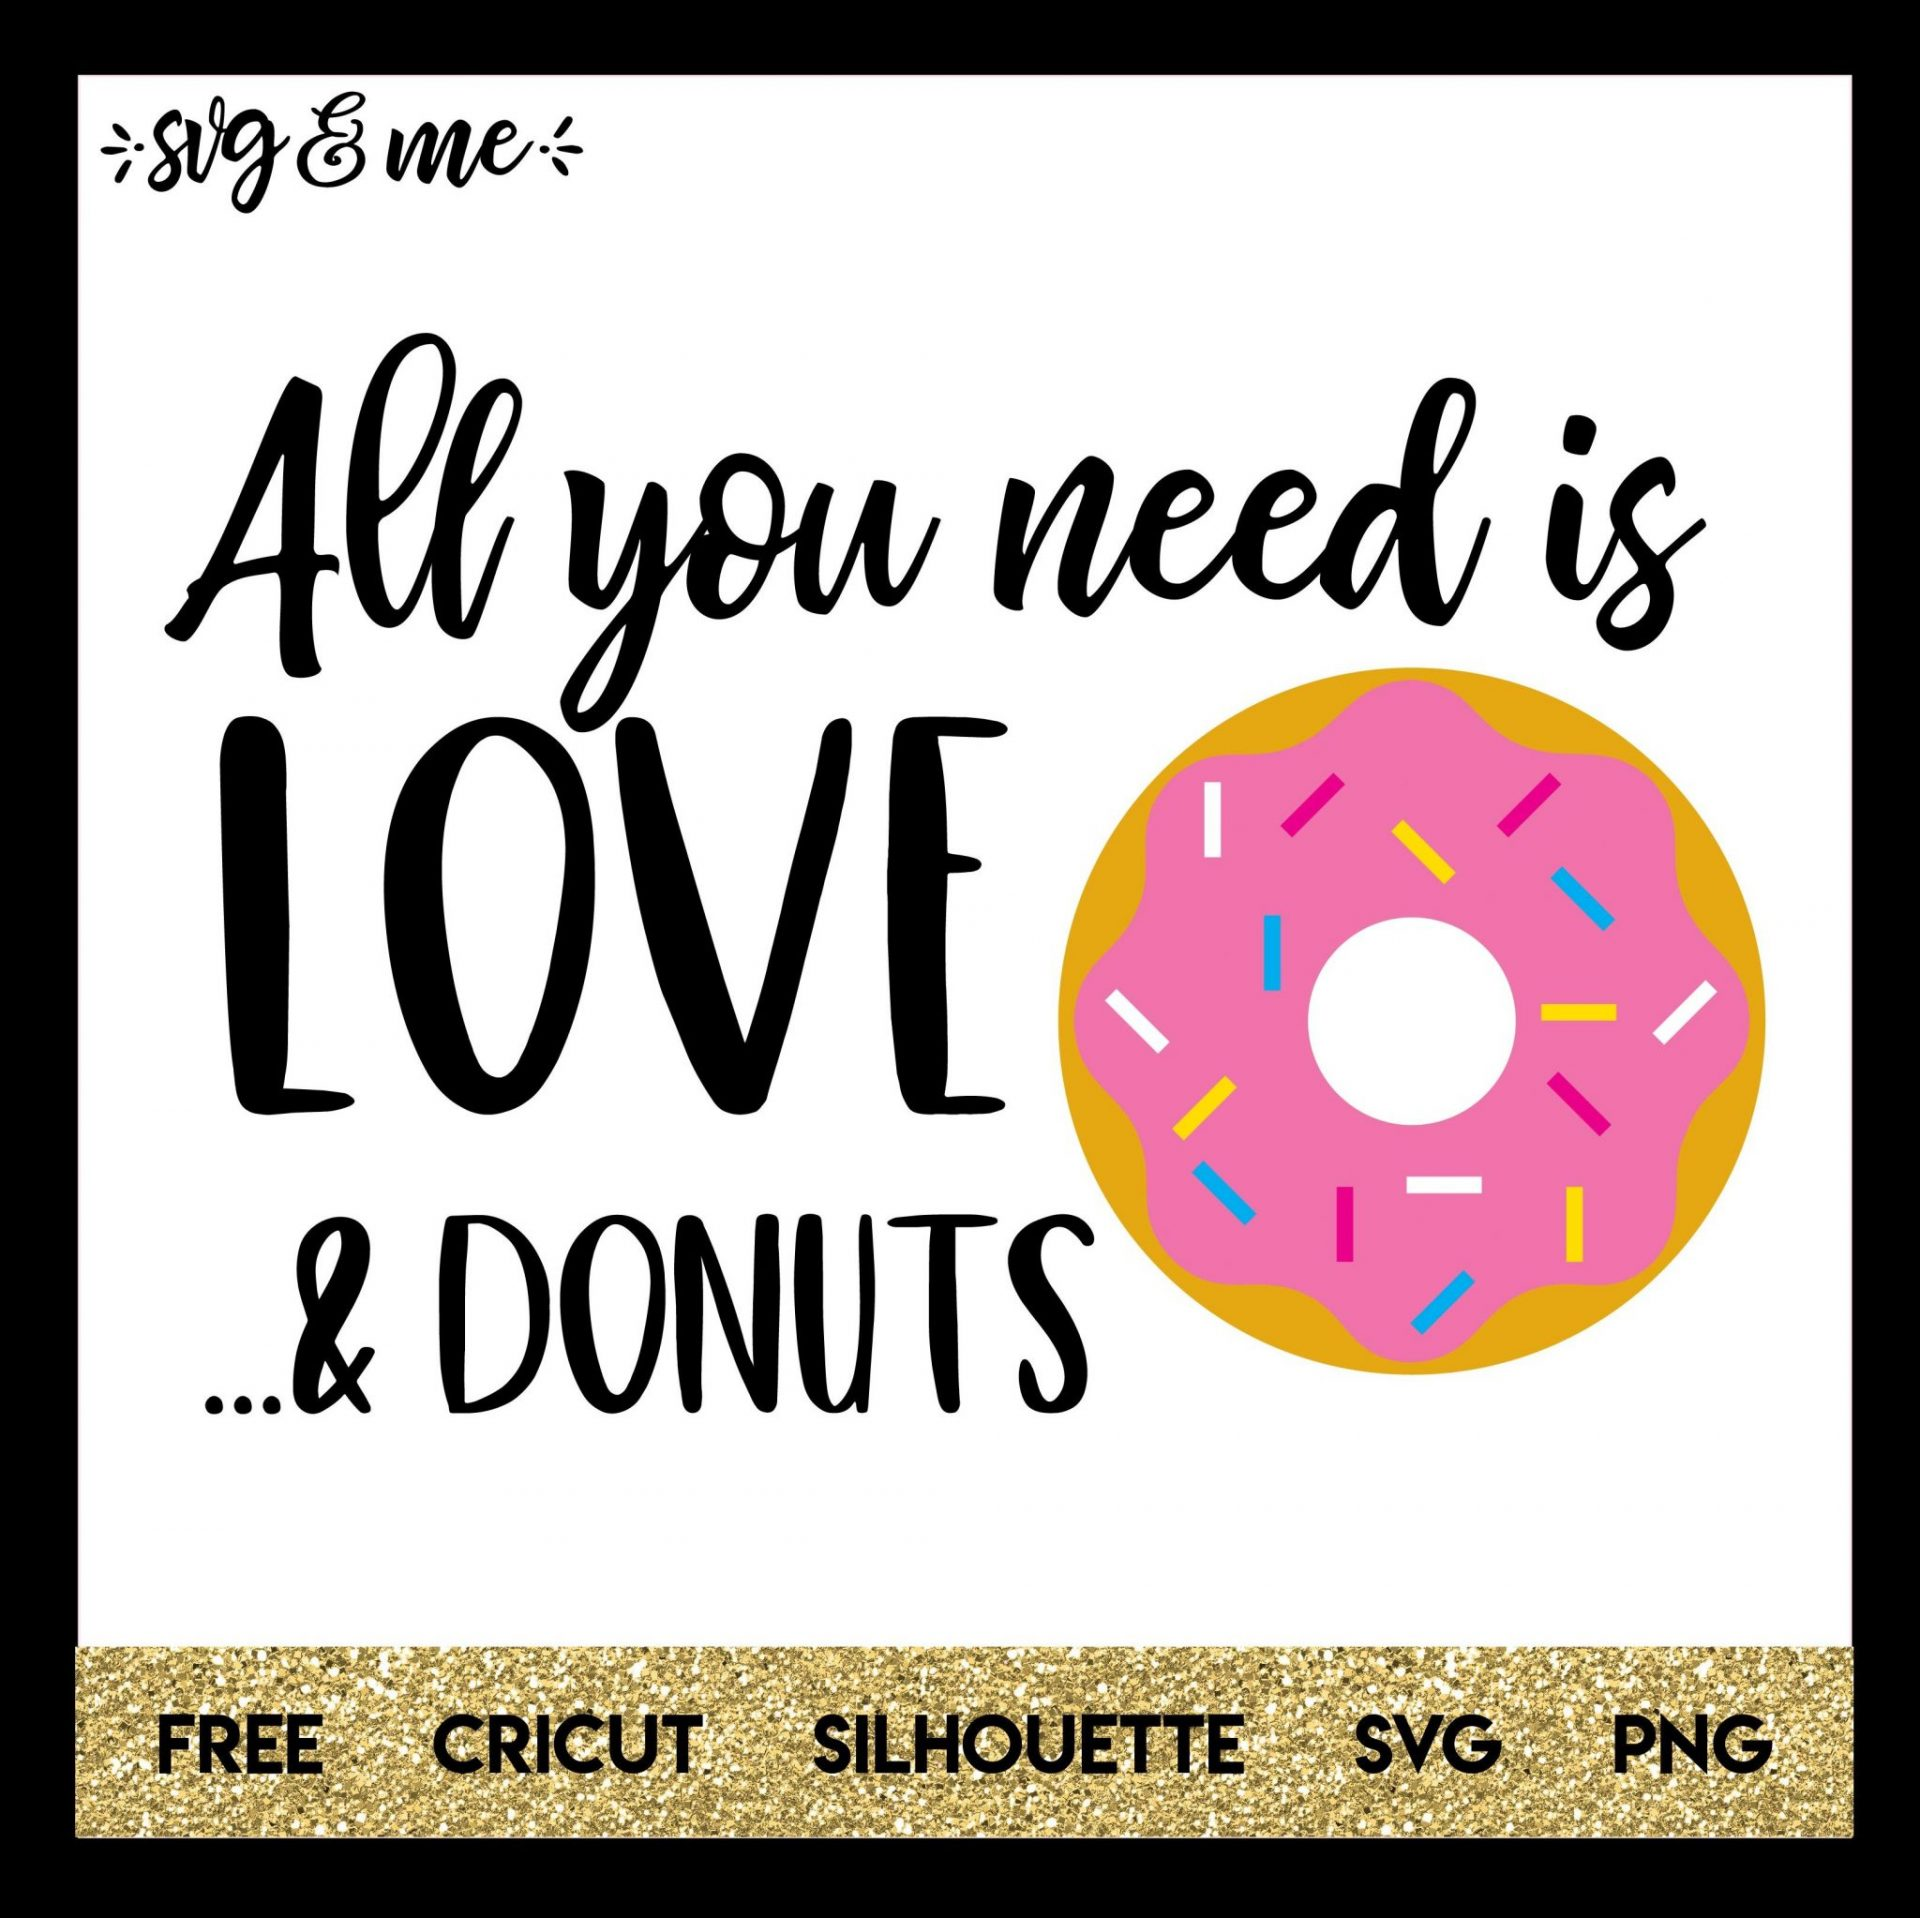 FREE SVG CUT FILE for Cricut, Silhouette and more - All You Need is Love and Donuts